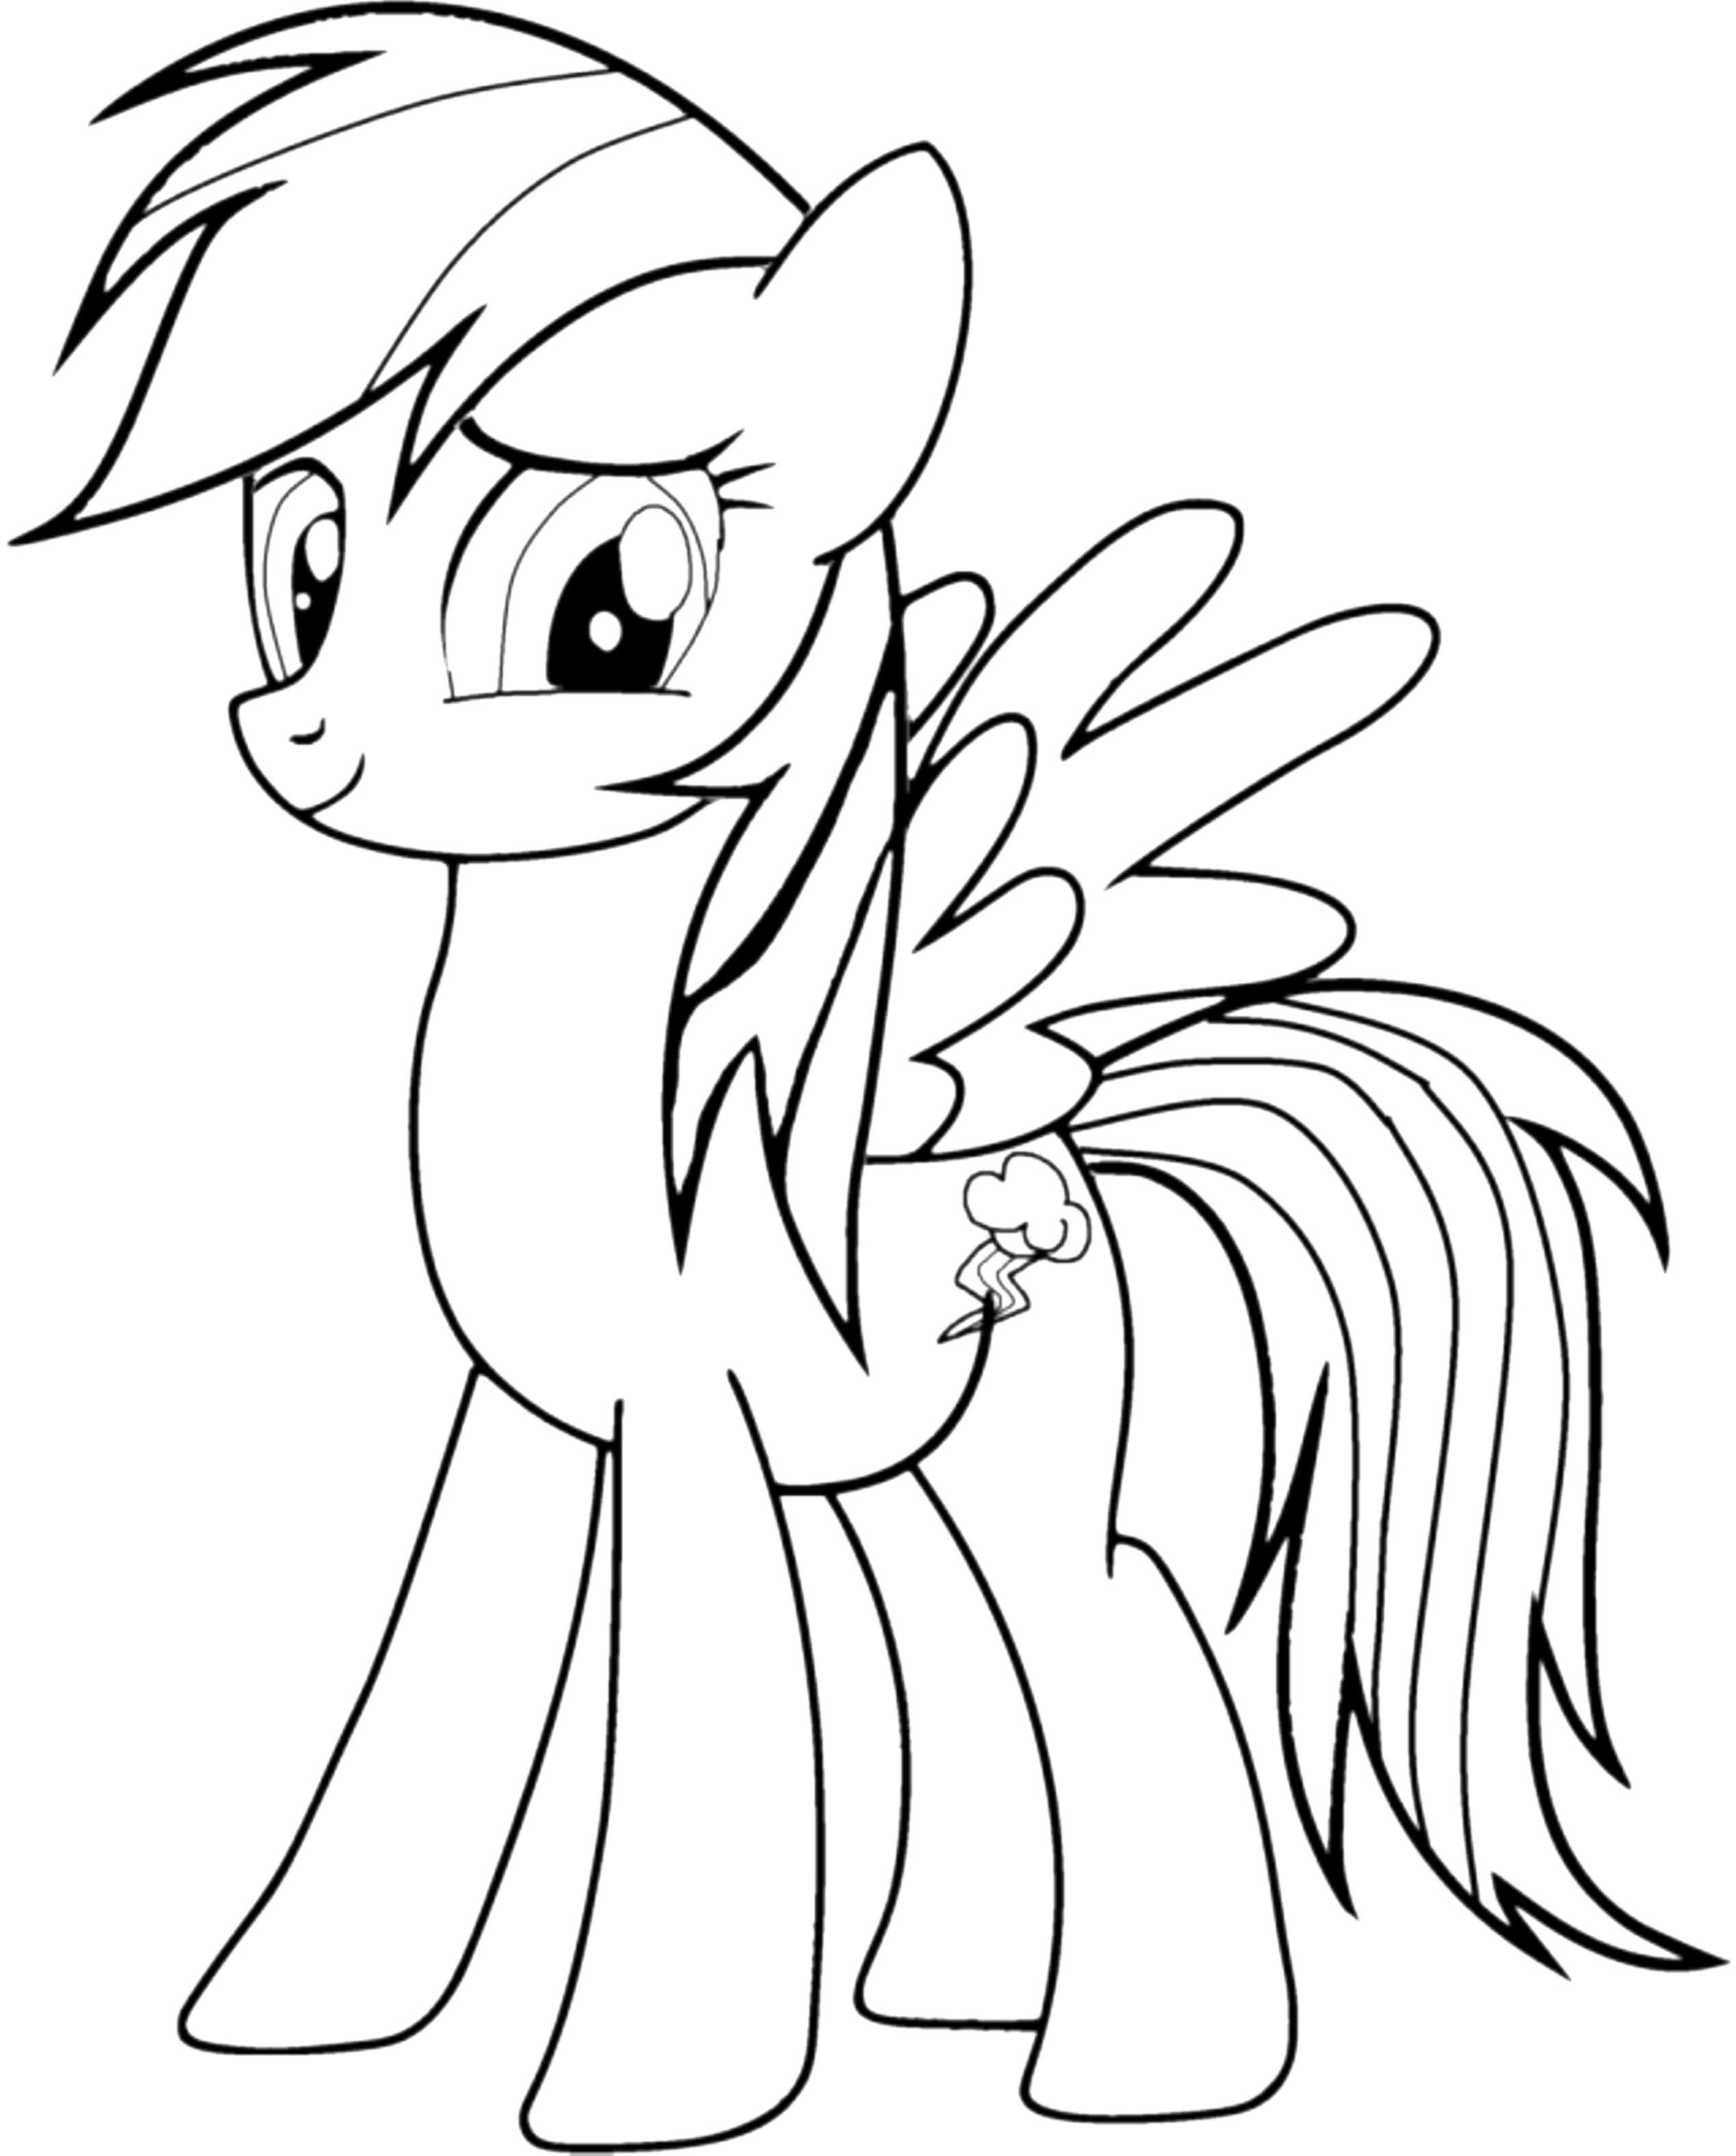 Rainbow dash coloring pages best coloring pages for kids for Coloring book pages for toddlers